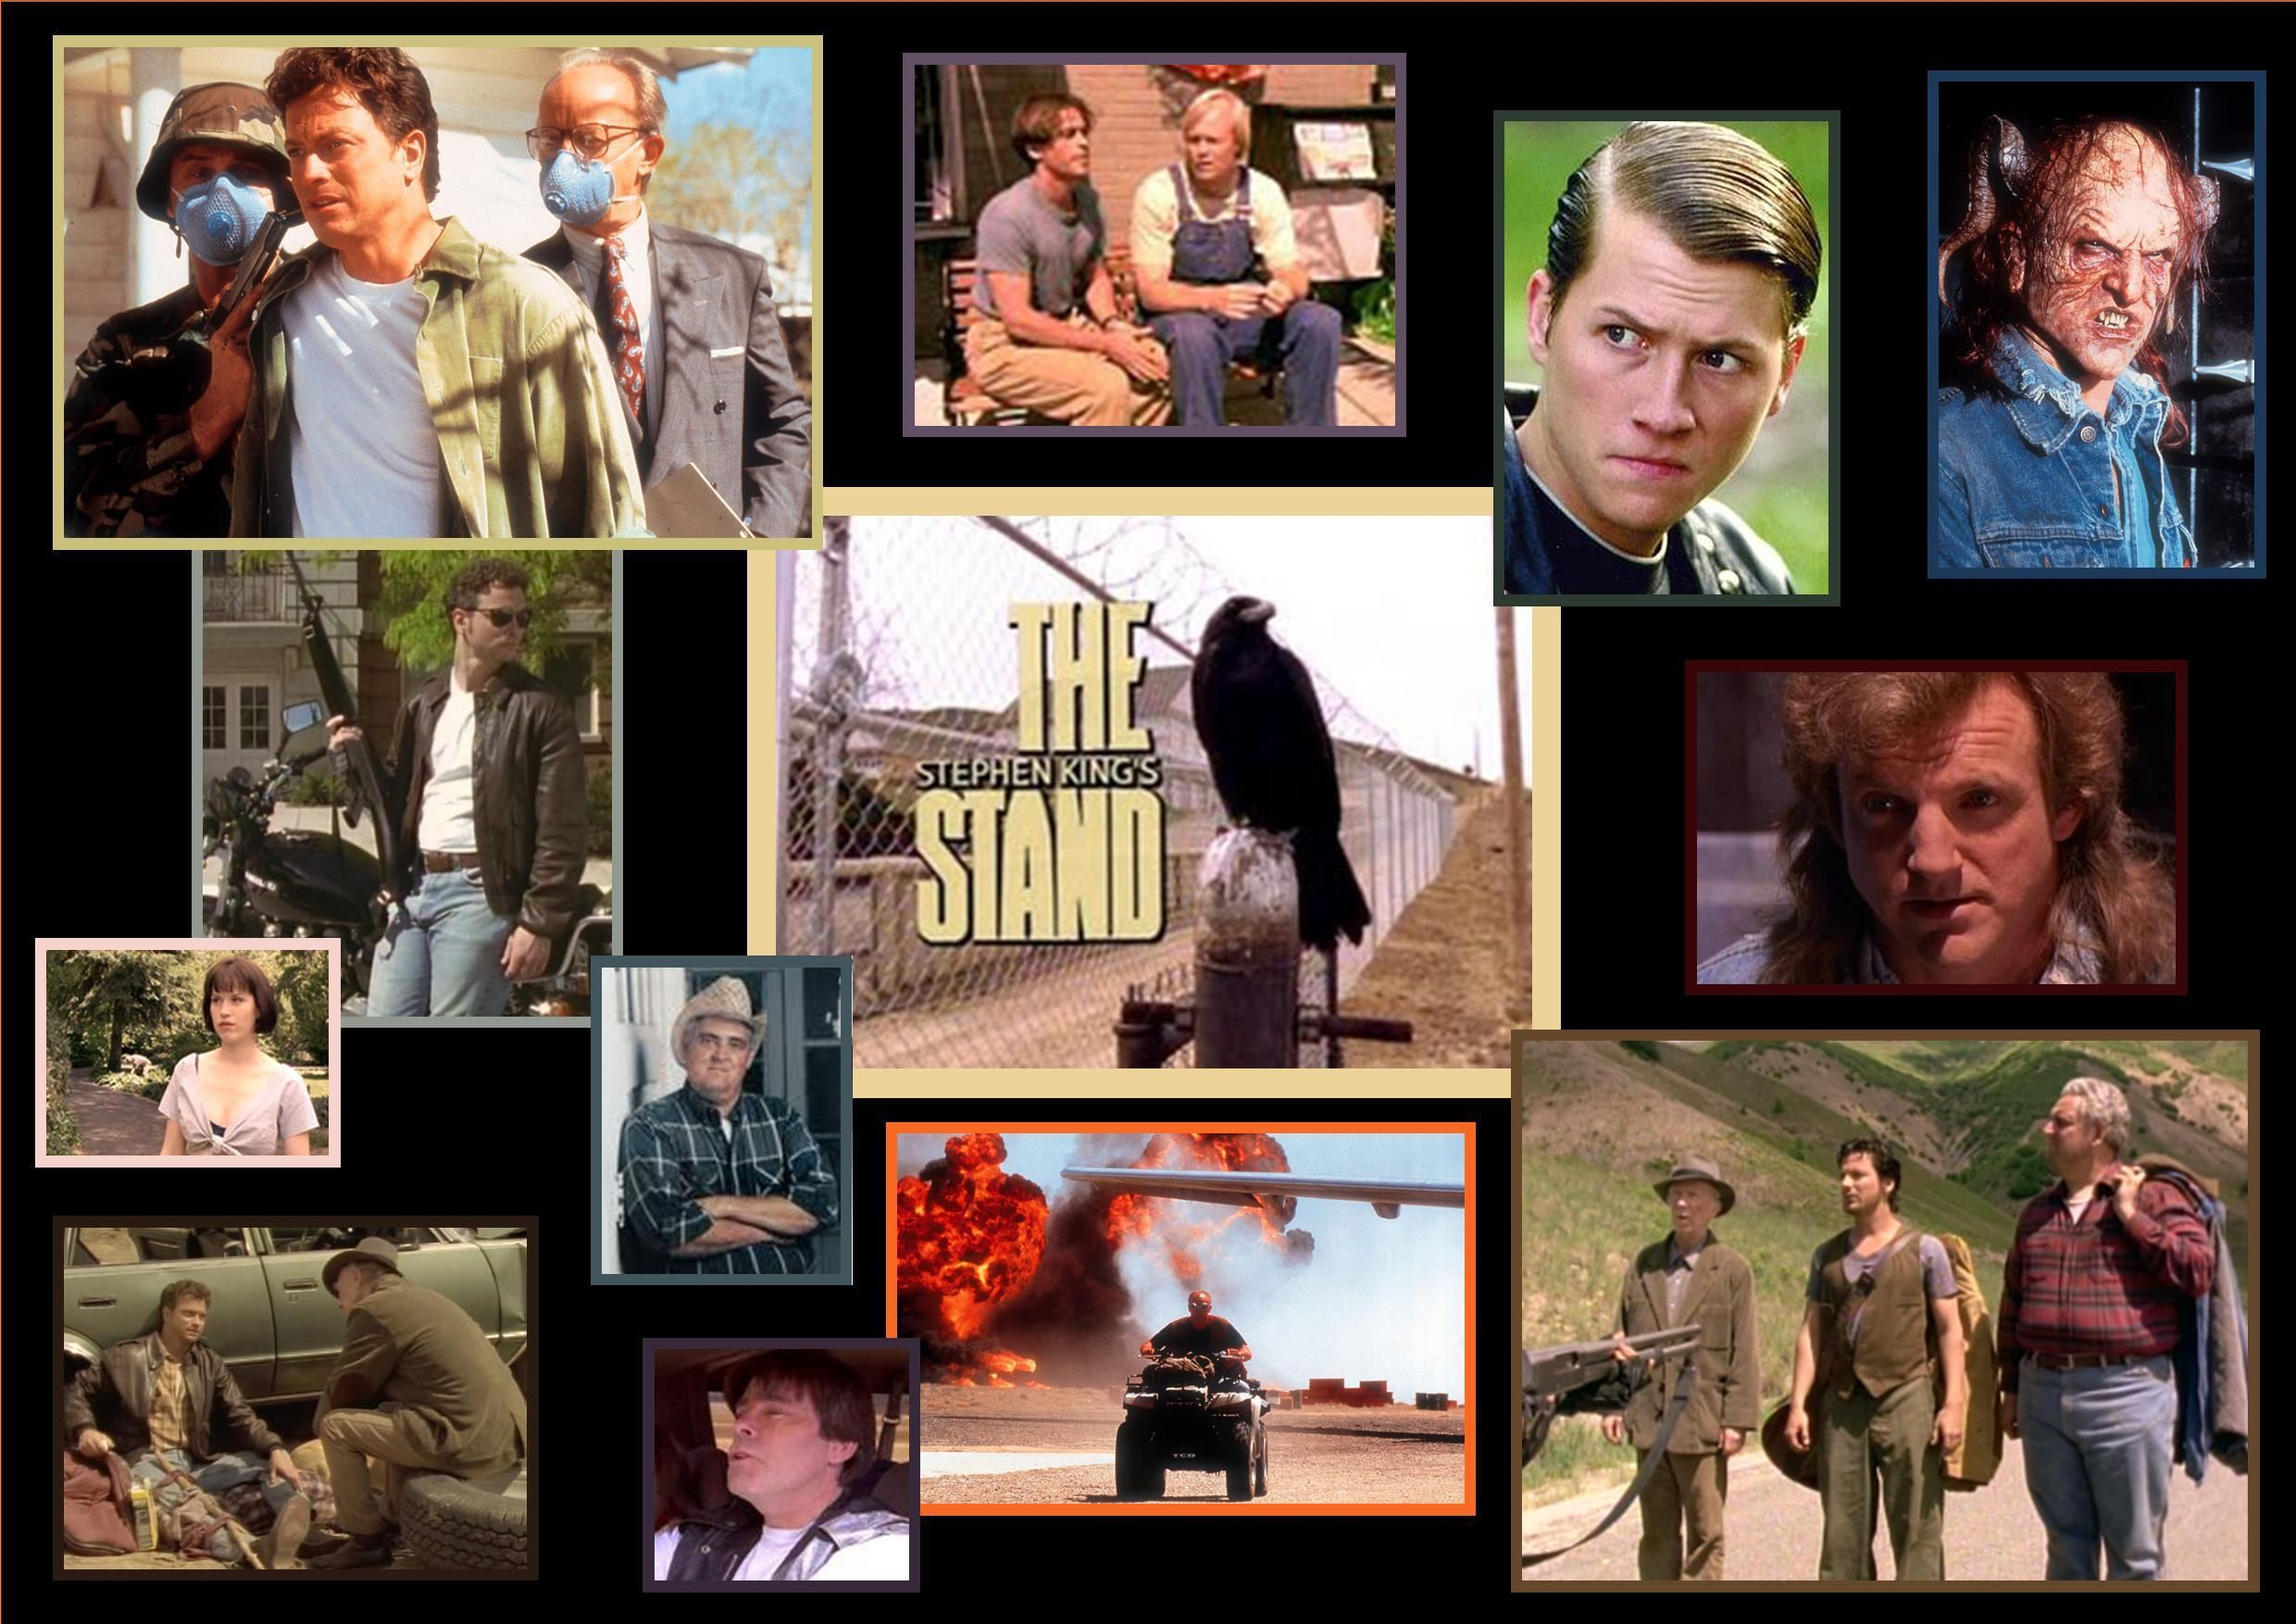 The Stand Stephen King Stephen King Movies The Stand Stephen King Tv Miniseries